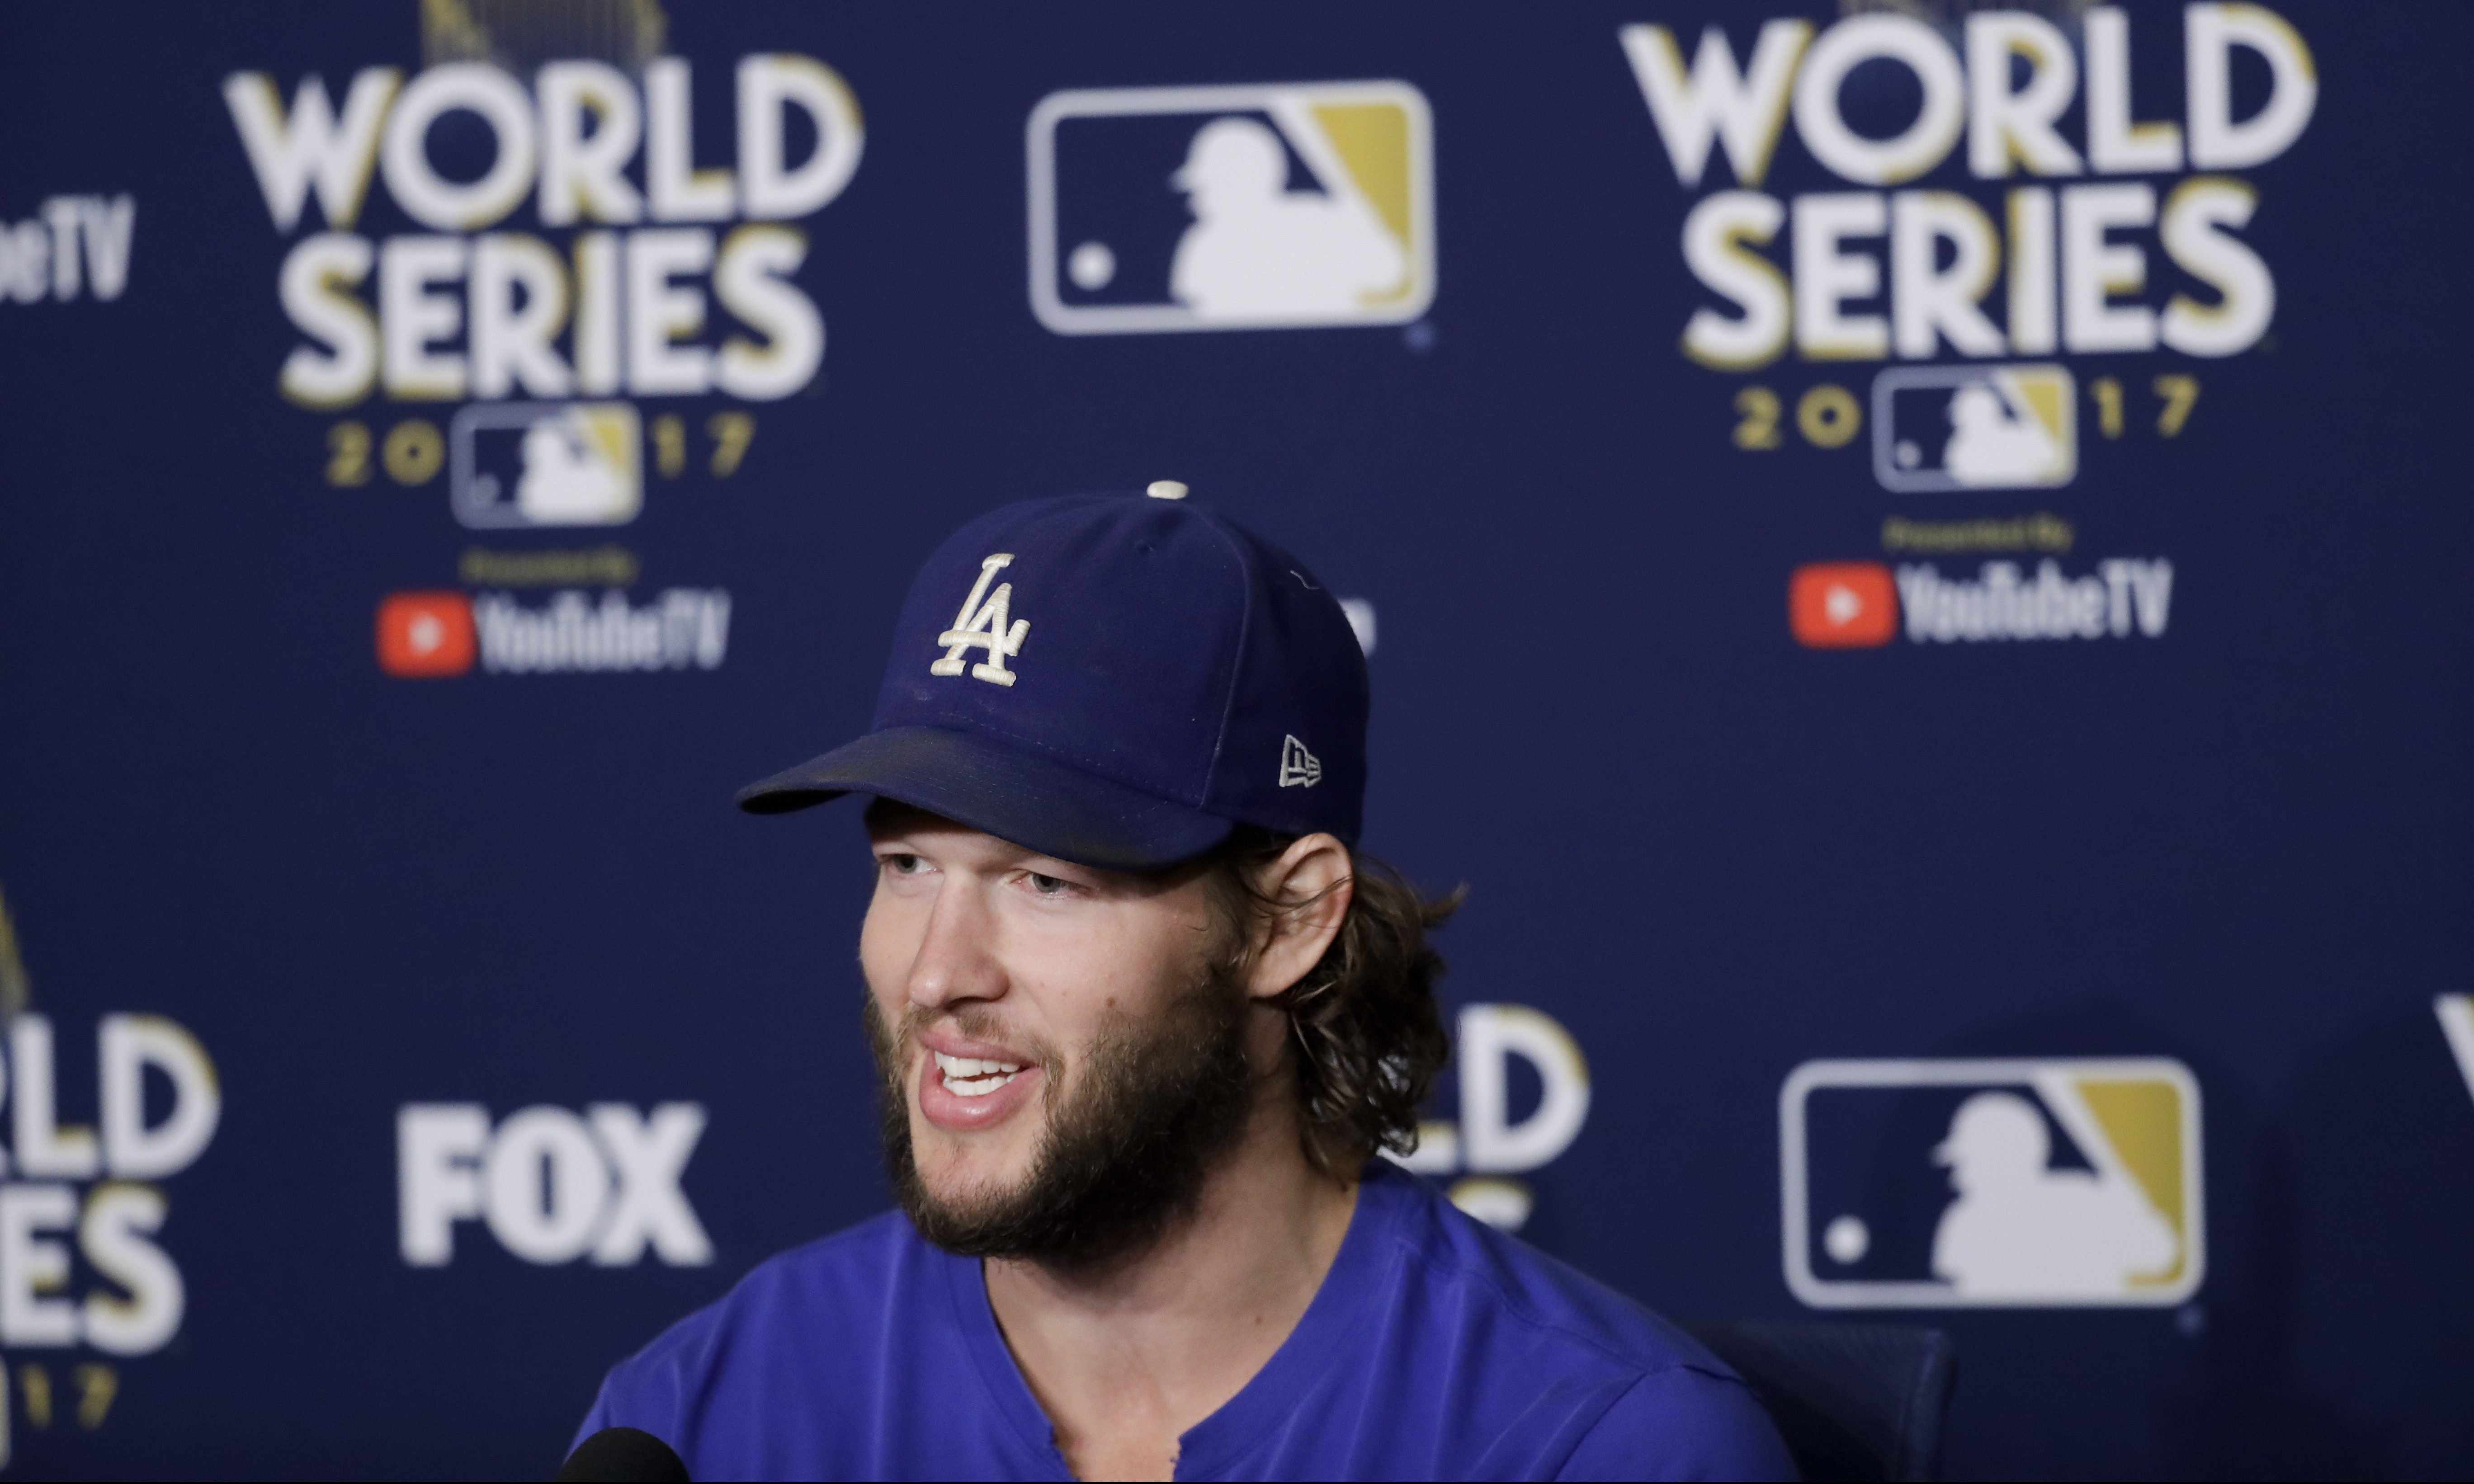 Los Angeles Dodgers starting pitcher Clayton Kershaw talks during a news conference during media day for baseball´s World Series against the Houston Astros, Monday, Oct. 23, 2017, in Los Angeles. (AP Photo/Chris Carlson)